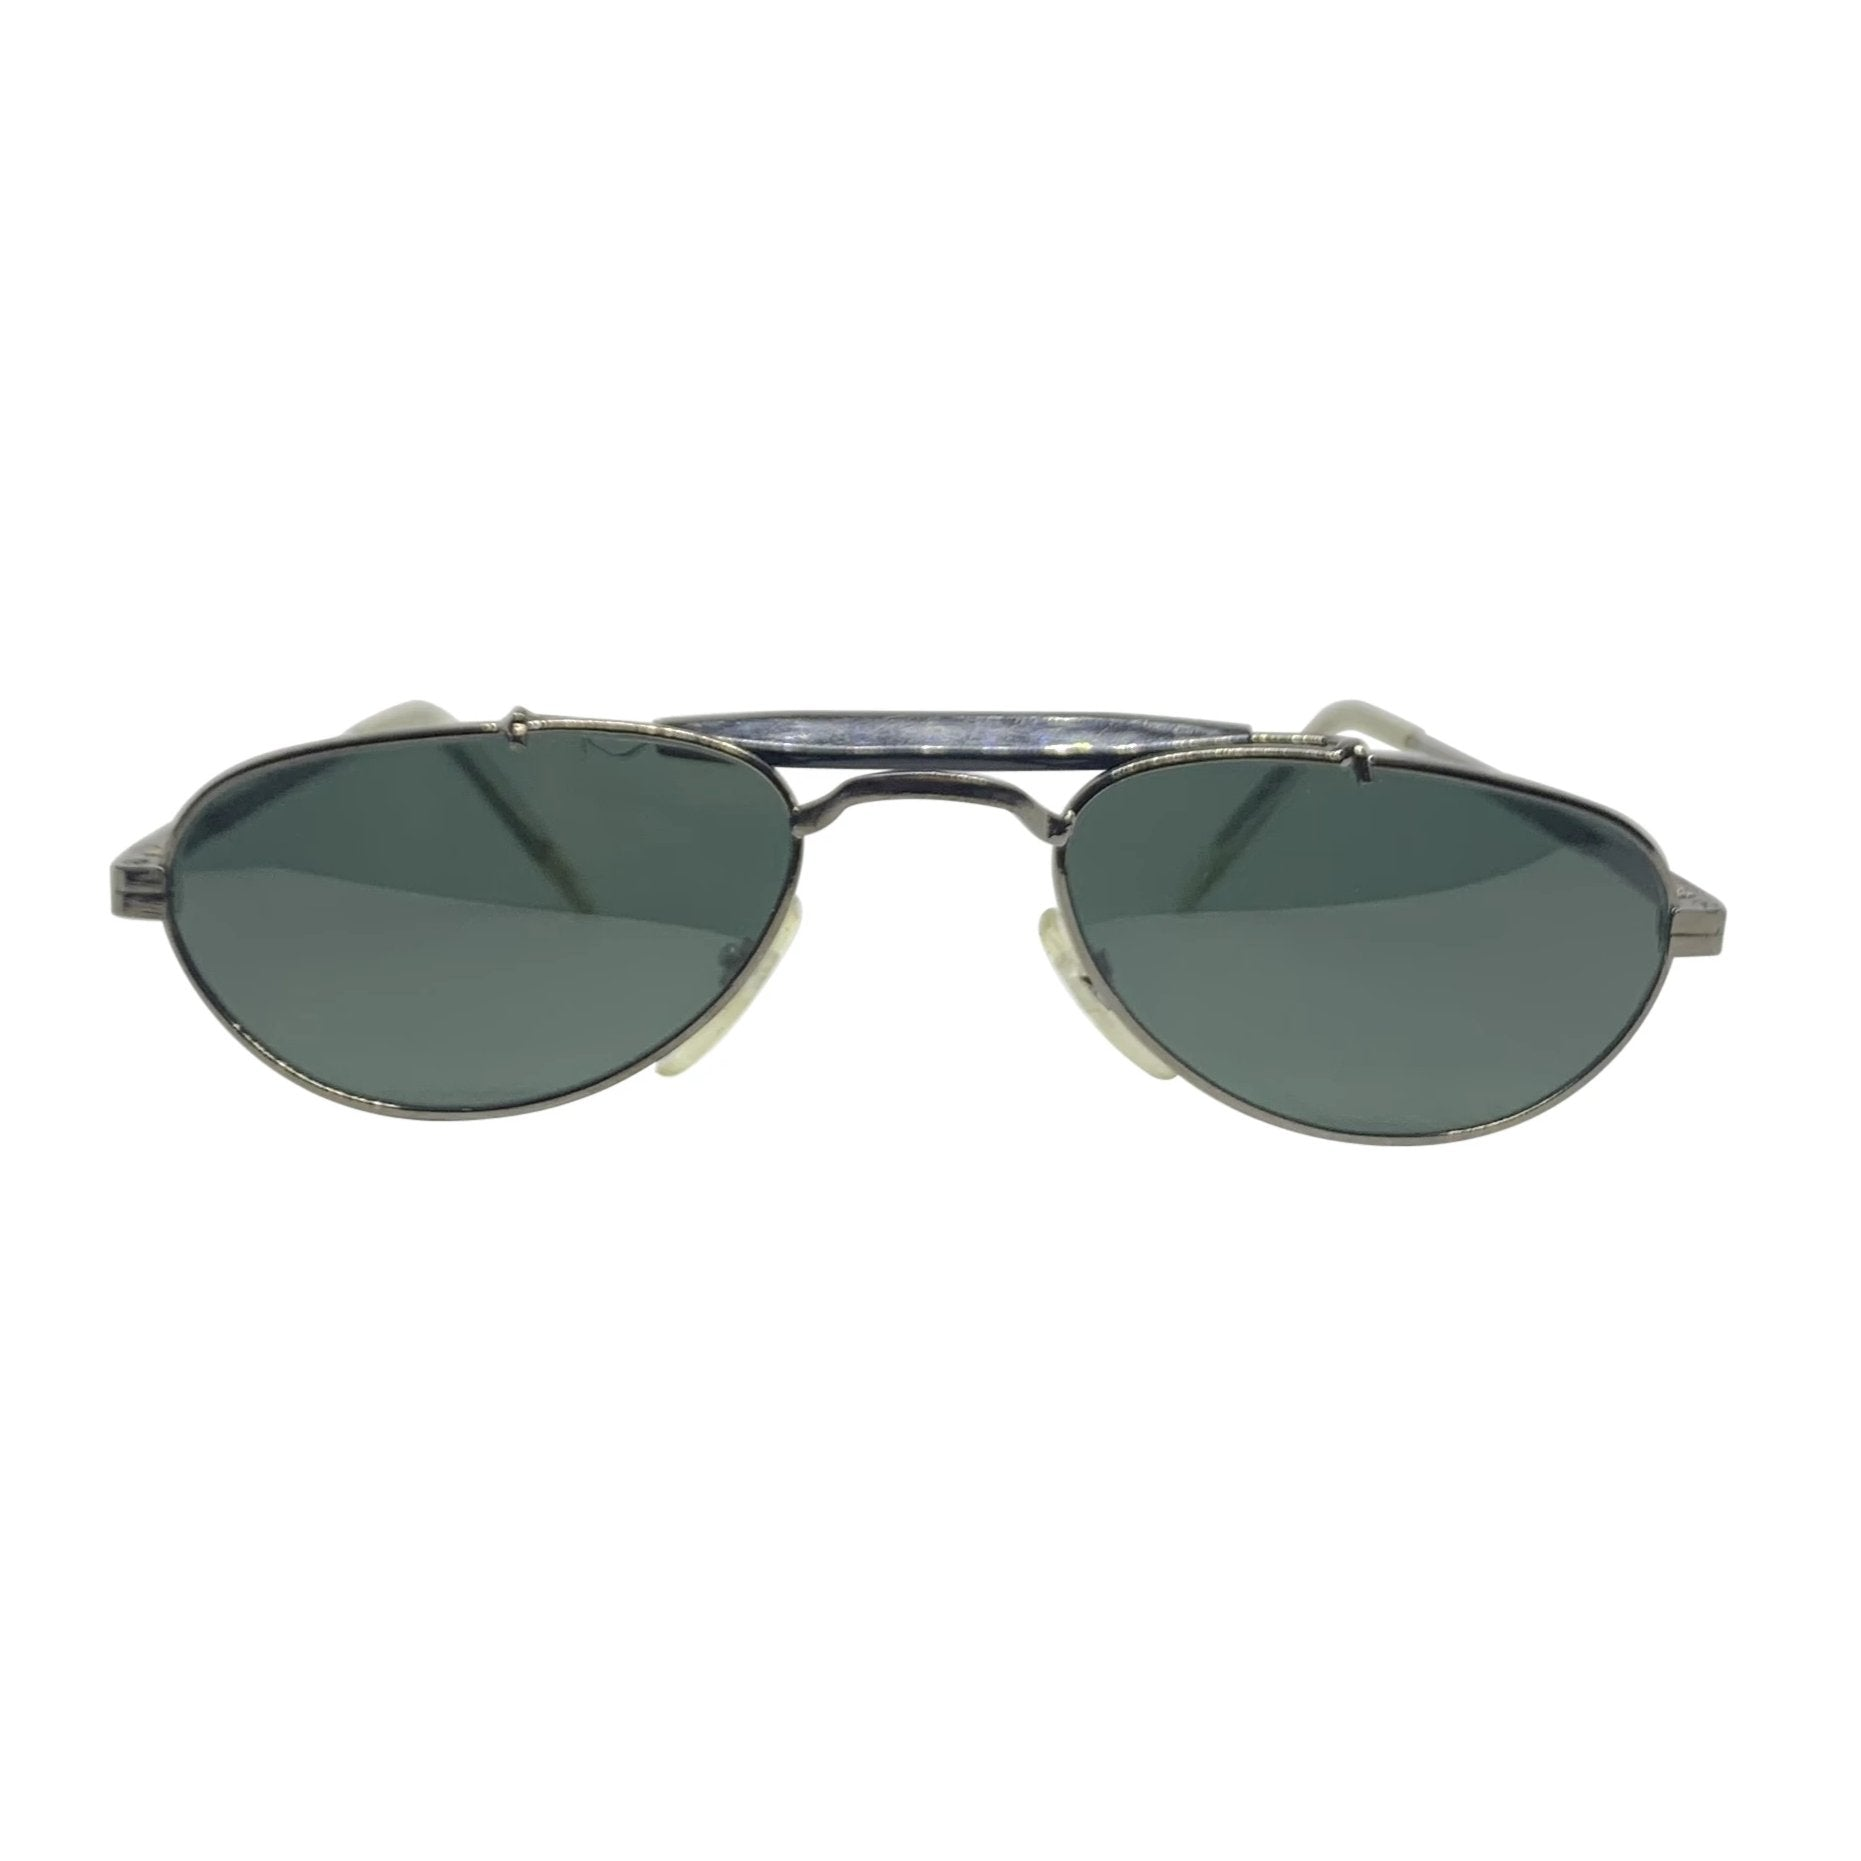 BARACK-O Gunmetal and Black Small Aviator Sunnies